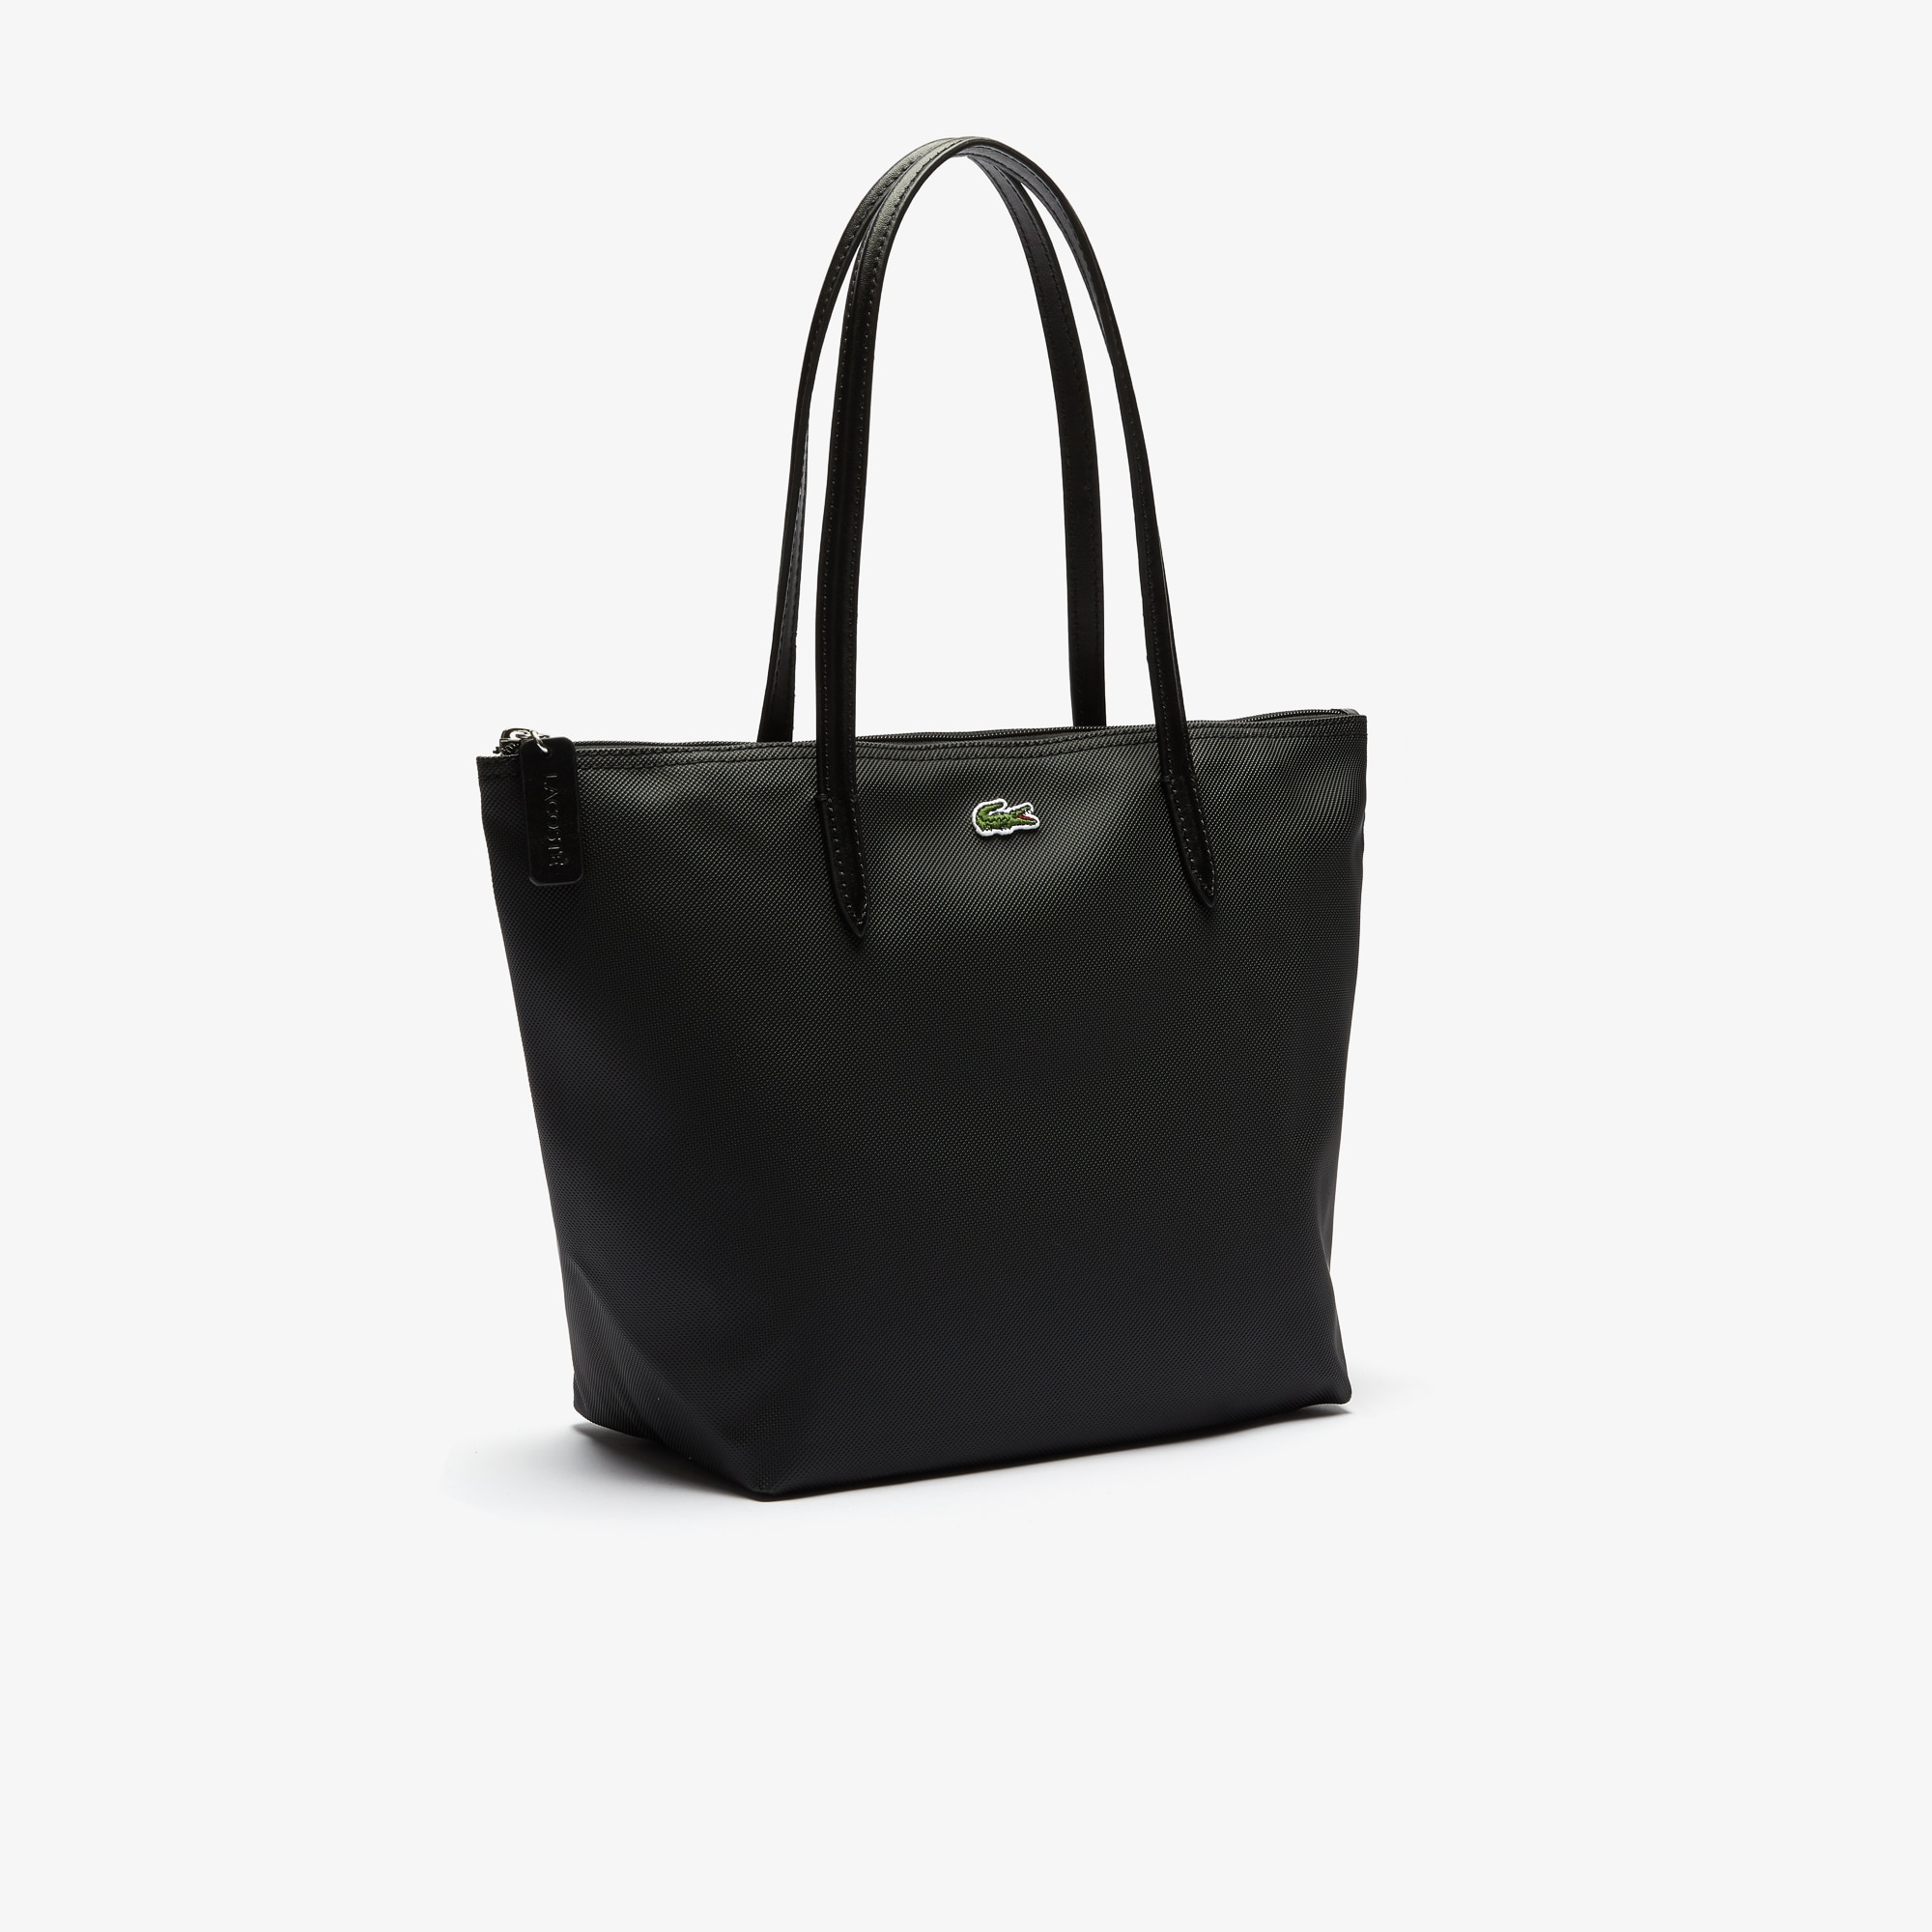 Shopping bag piccola con zip L.12.12 Concept tinta unita